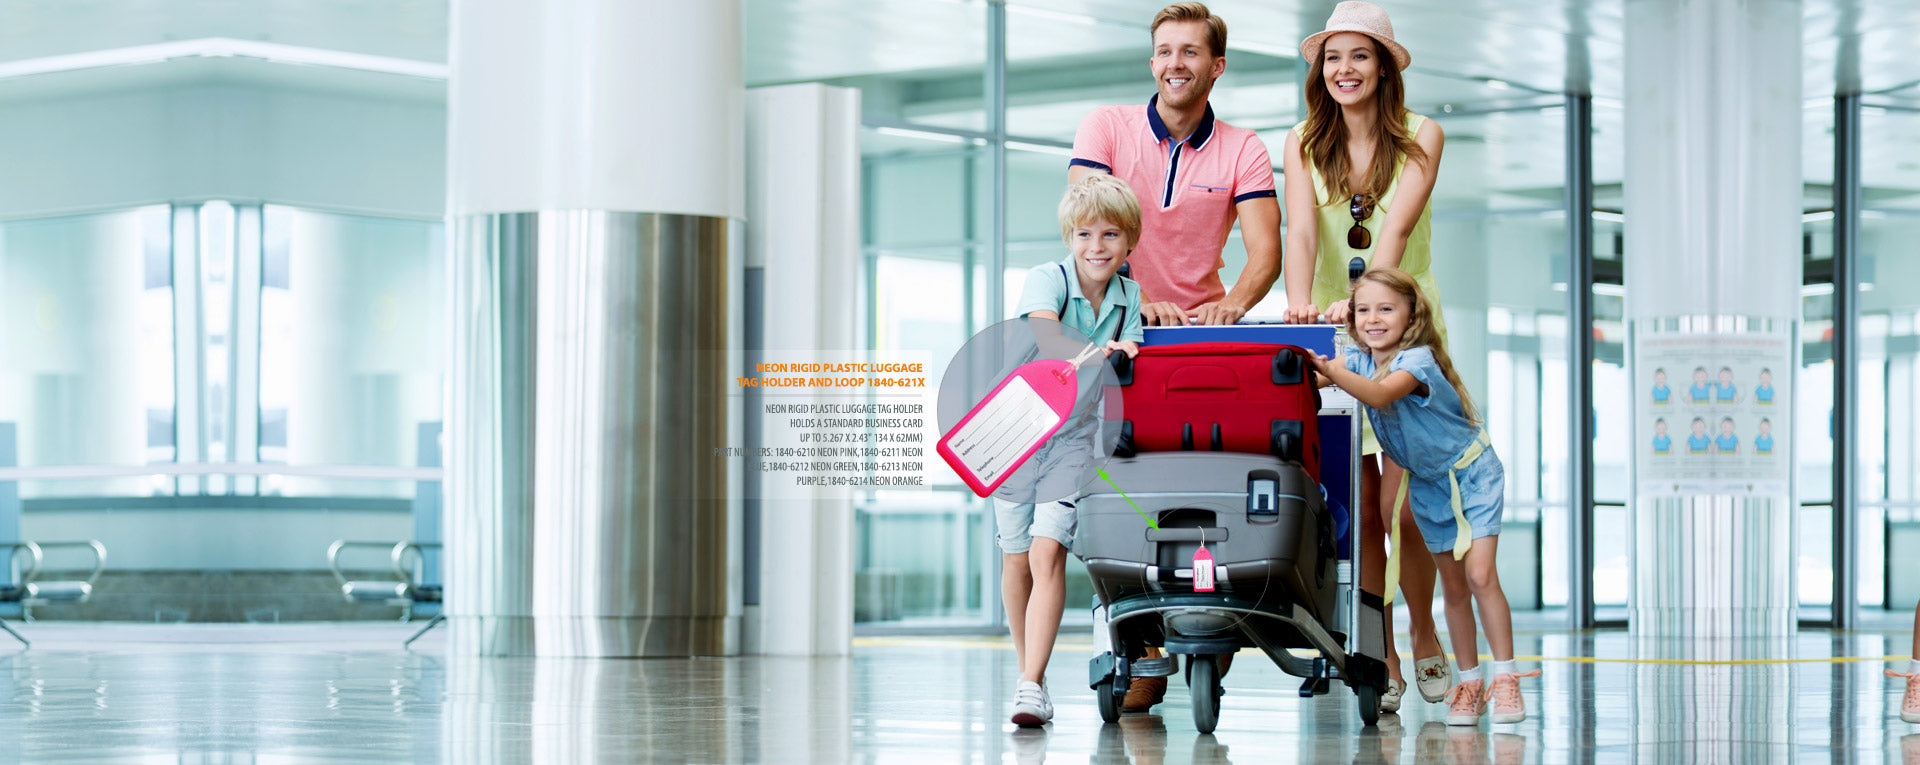 Family in airport with luggage showing luggage tag badge holders, click to view all luggage tag holders.